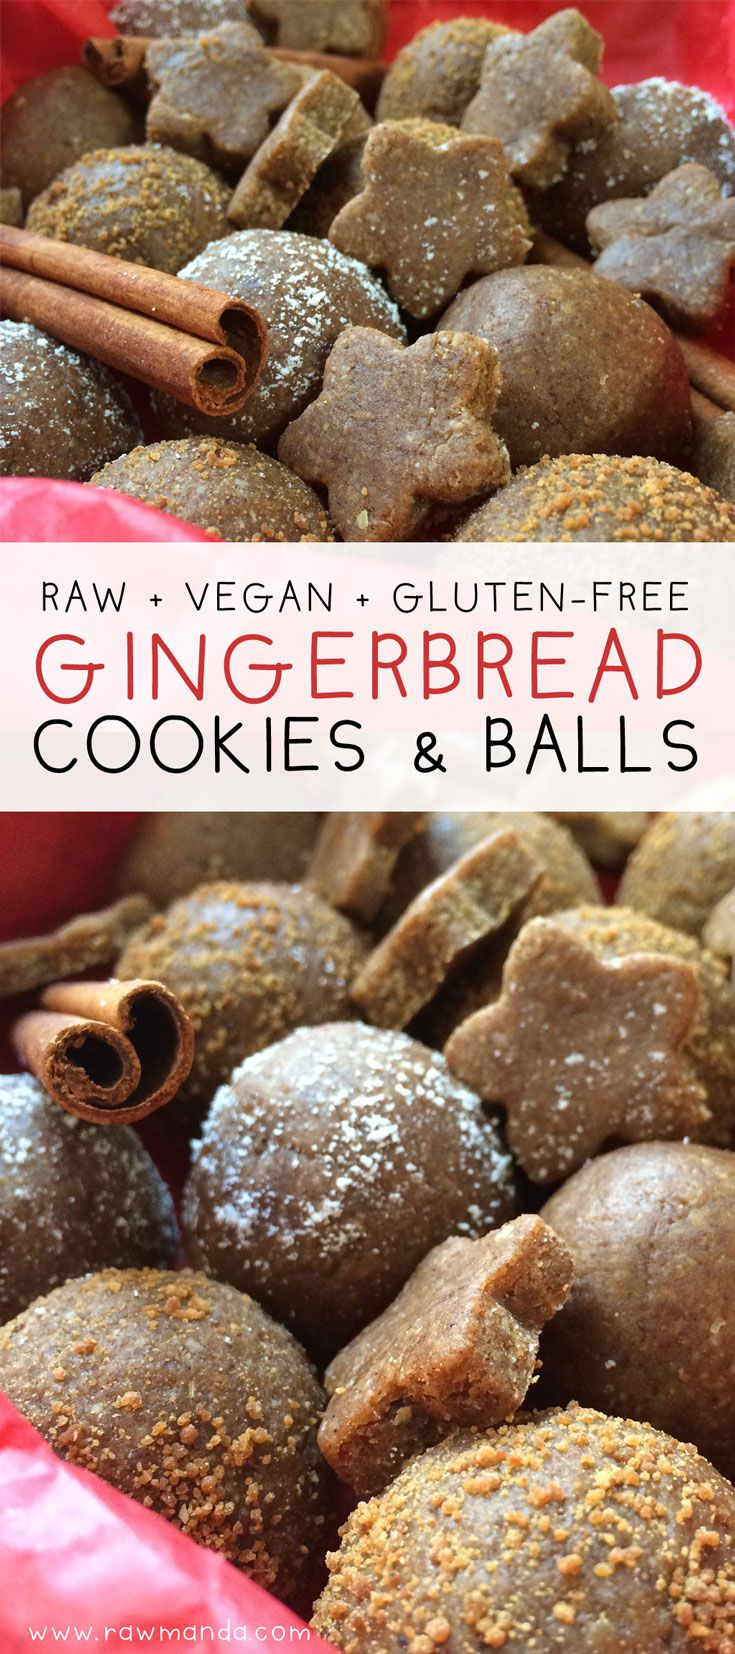 Raw Gingerbread Cookie Recipe (Vegan,Gluten-Free) - This gingerbread cookie dough is moist with a delicious chewy center. Perfect for staying healthy during the holidays, the warm gingerbread spices really sing in the recipe when eaten raw there's no need for any baking. @rawmanda